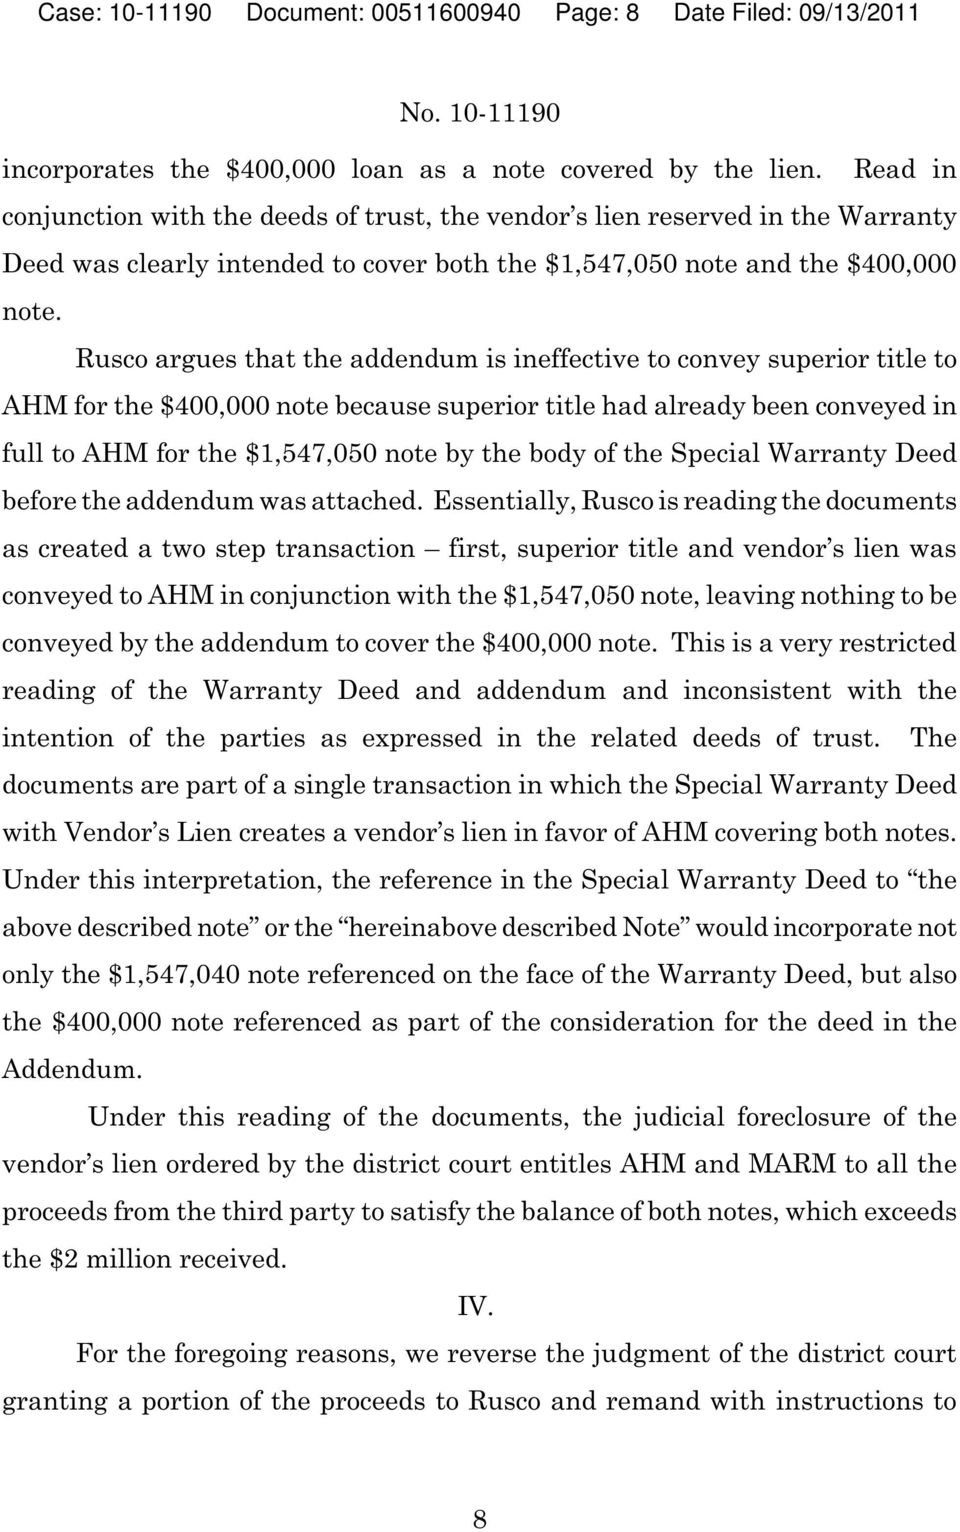 Rusco argues that the addendum is ineffective to convey superior title to AHM for the $400,000 note because superior title had already been conveyed in full to AHM for the $1,547,050 note by the body